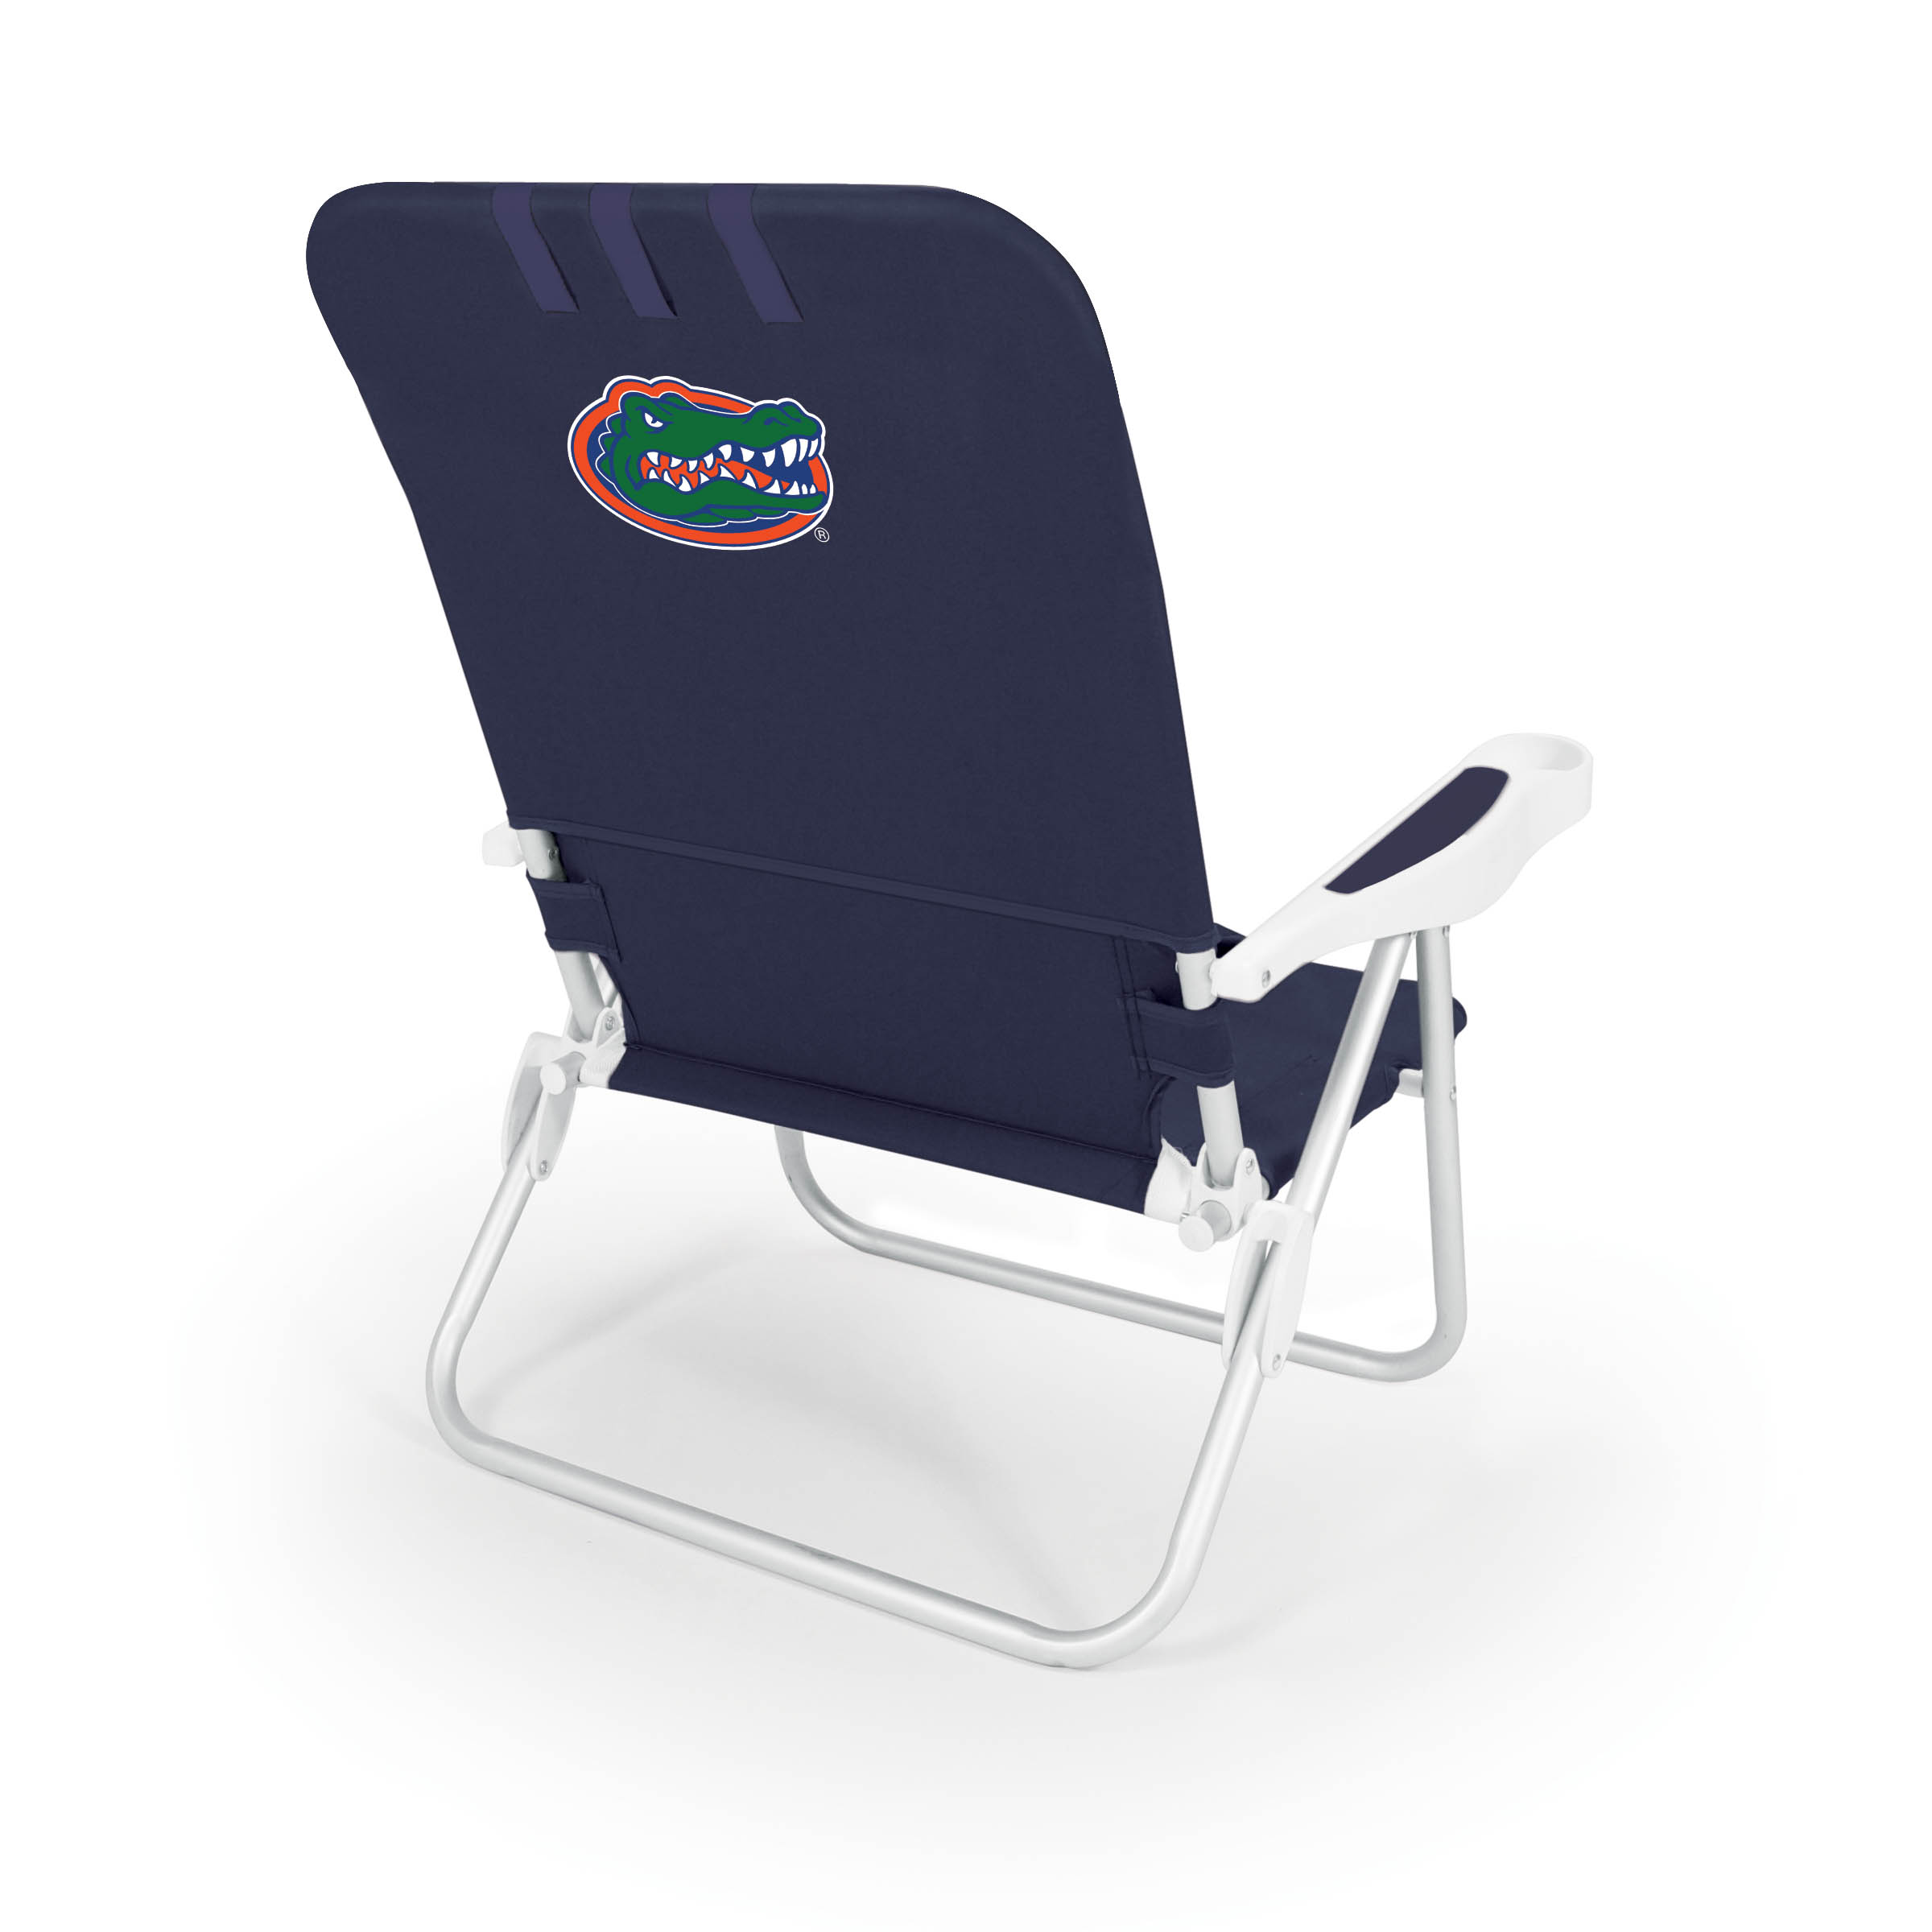 Portable Beach Chair Monaco Beach Chair Blue University Of Florida Gators Digital Print